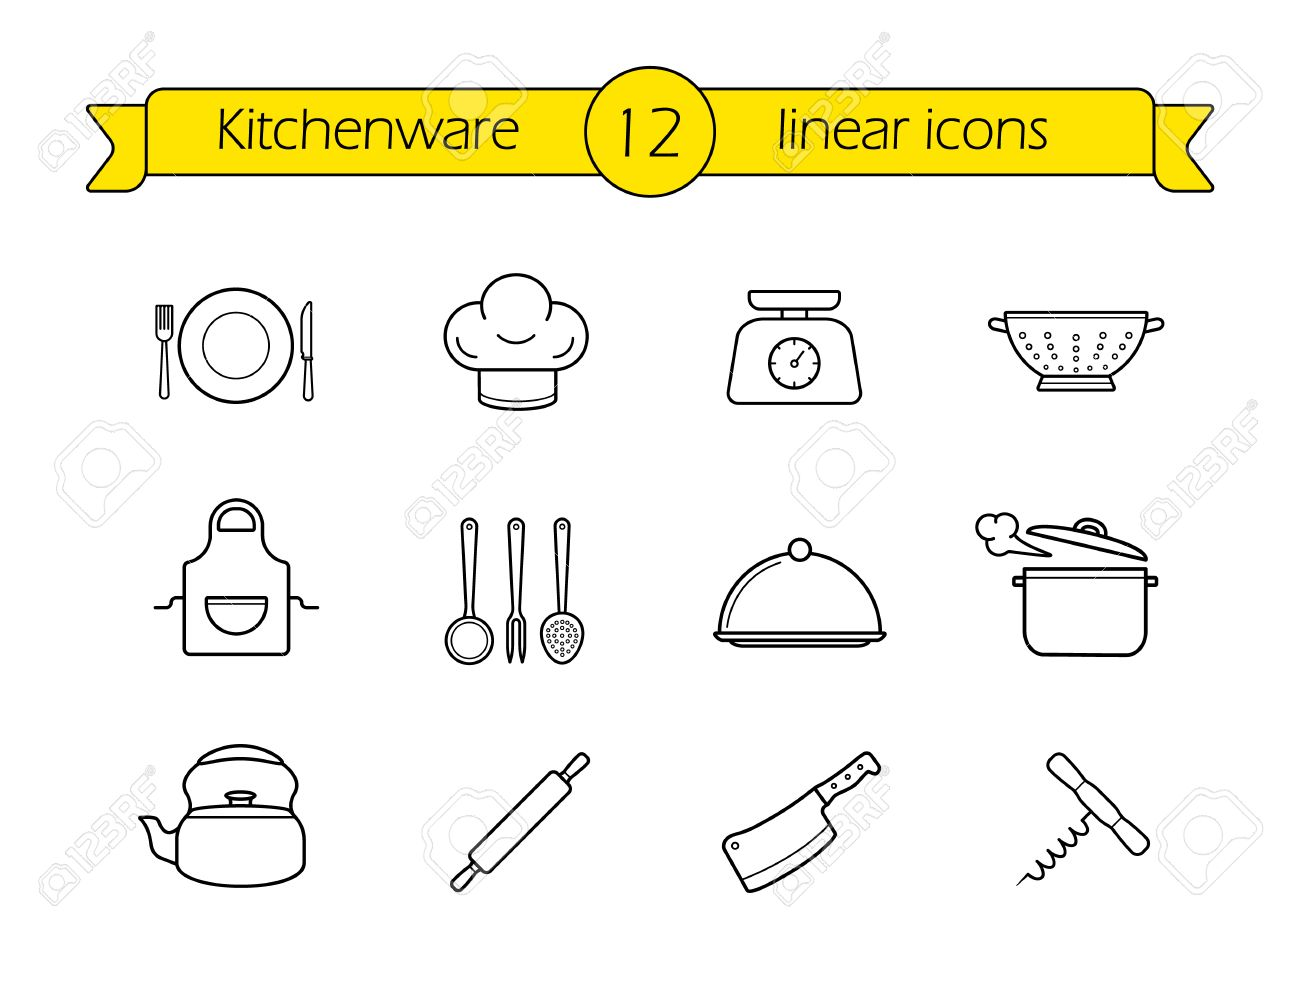 Restaurant Kitchenware kitchenware line icons set. restaurant cooking utensils items